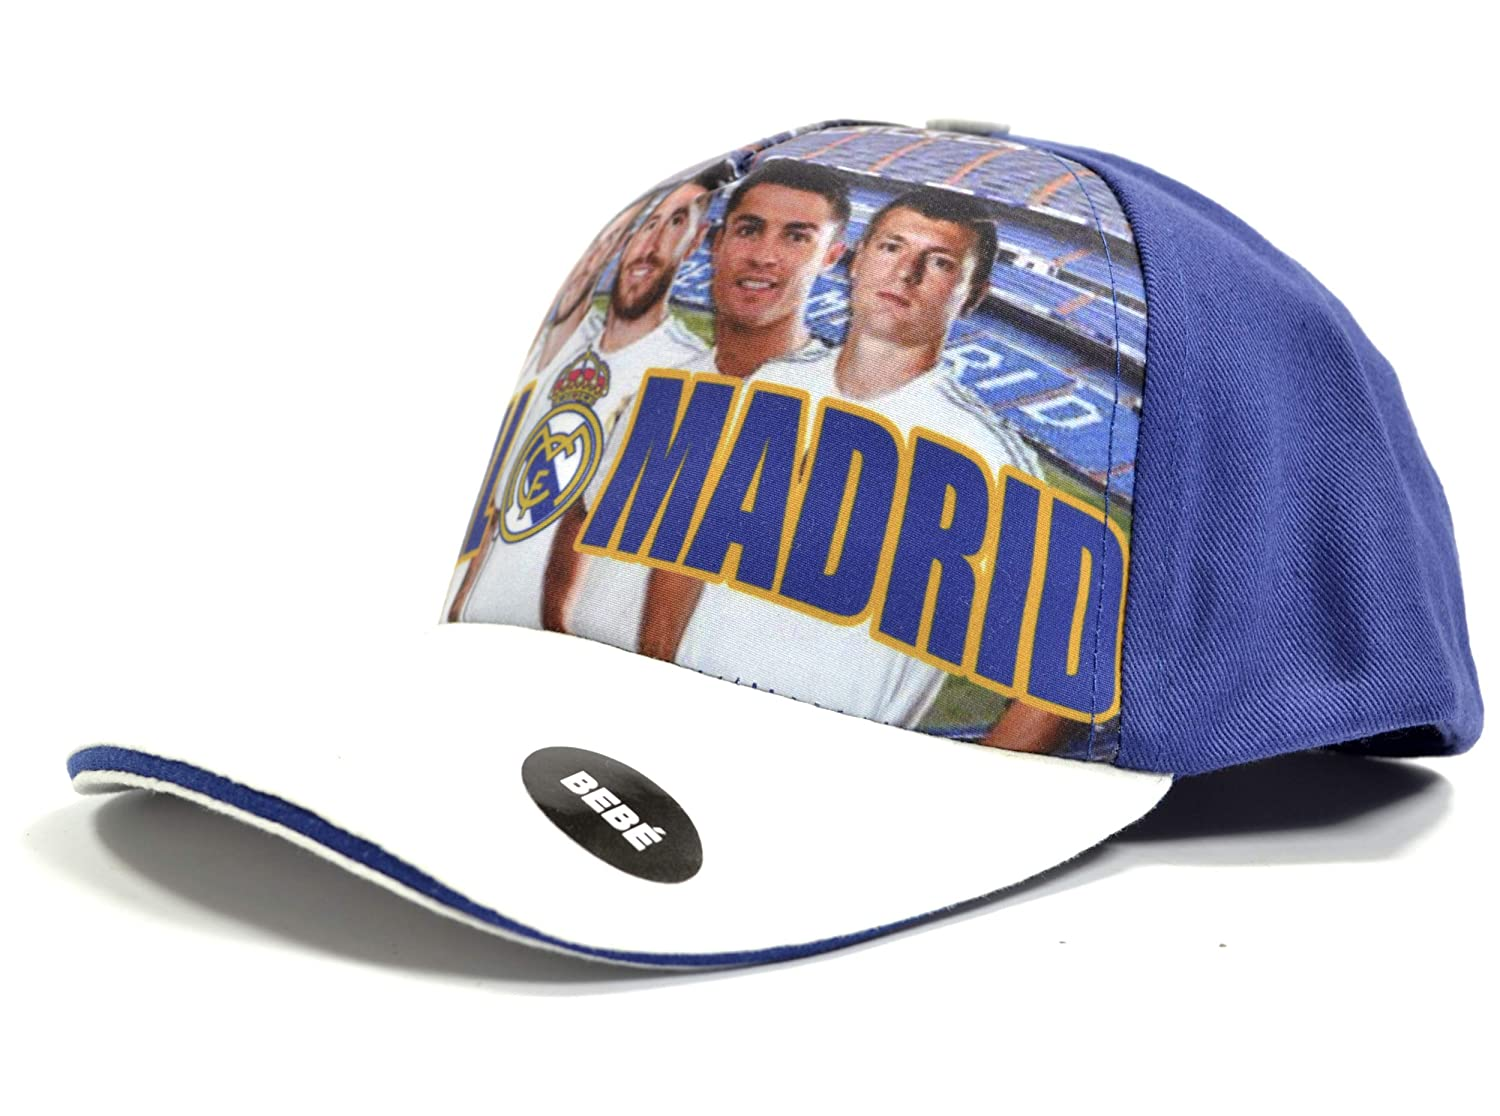 GORRA OFICIAL REAL MADRID AZUL FOTO EQUIPO BEBE COTTON LIKE ...